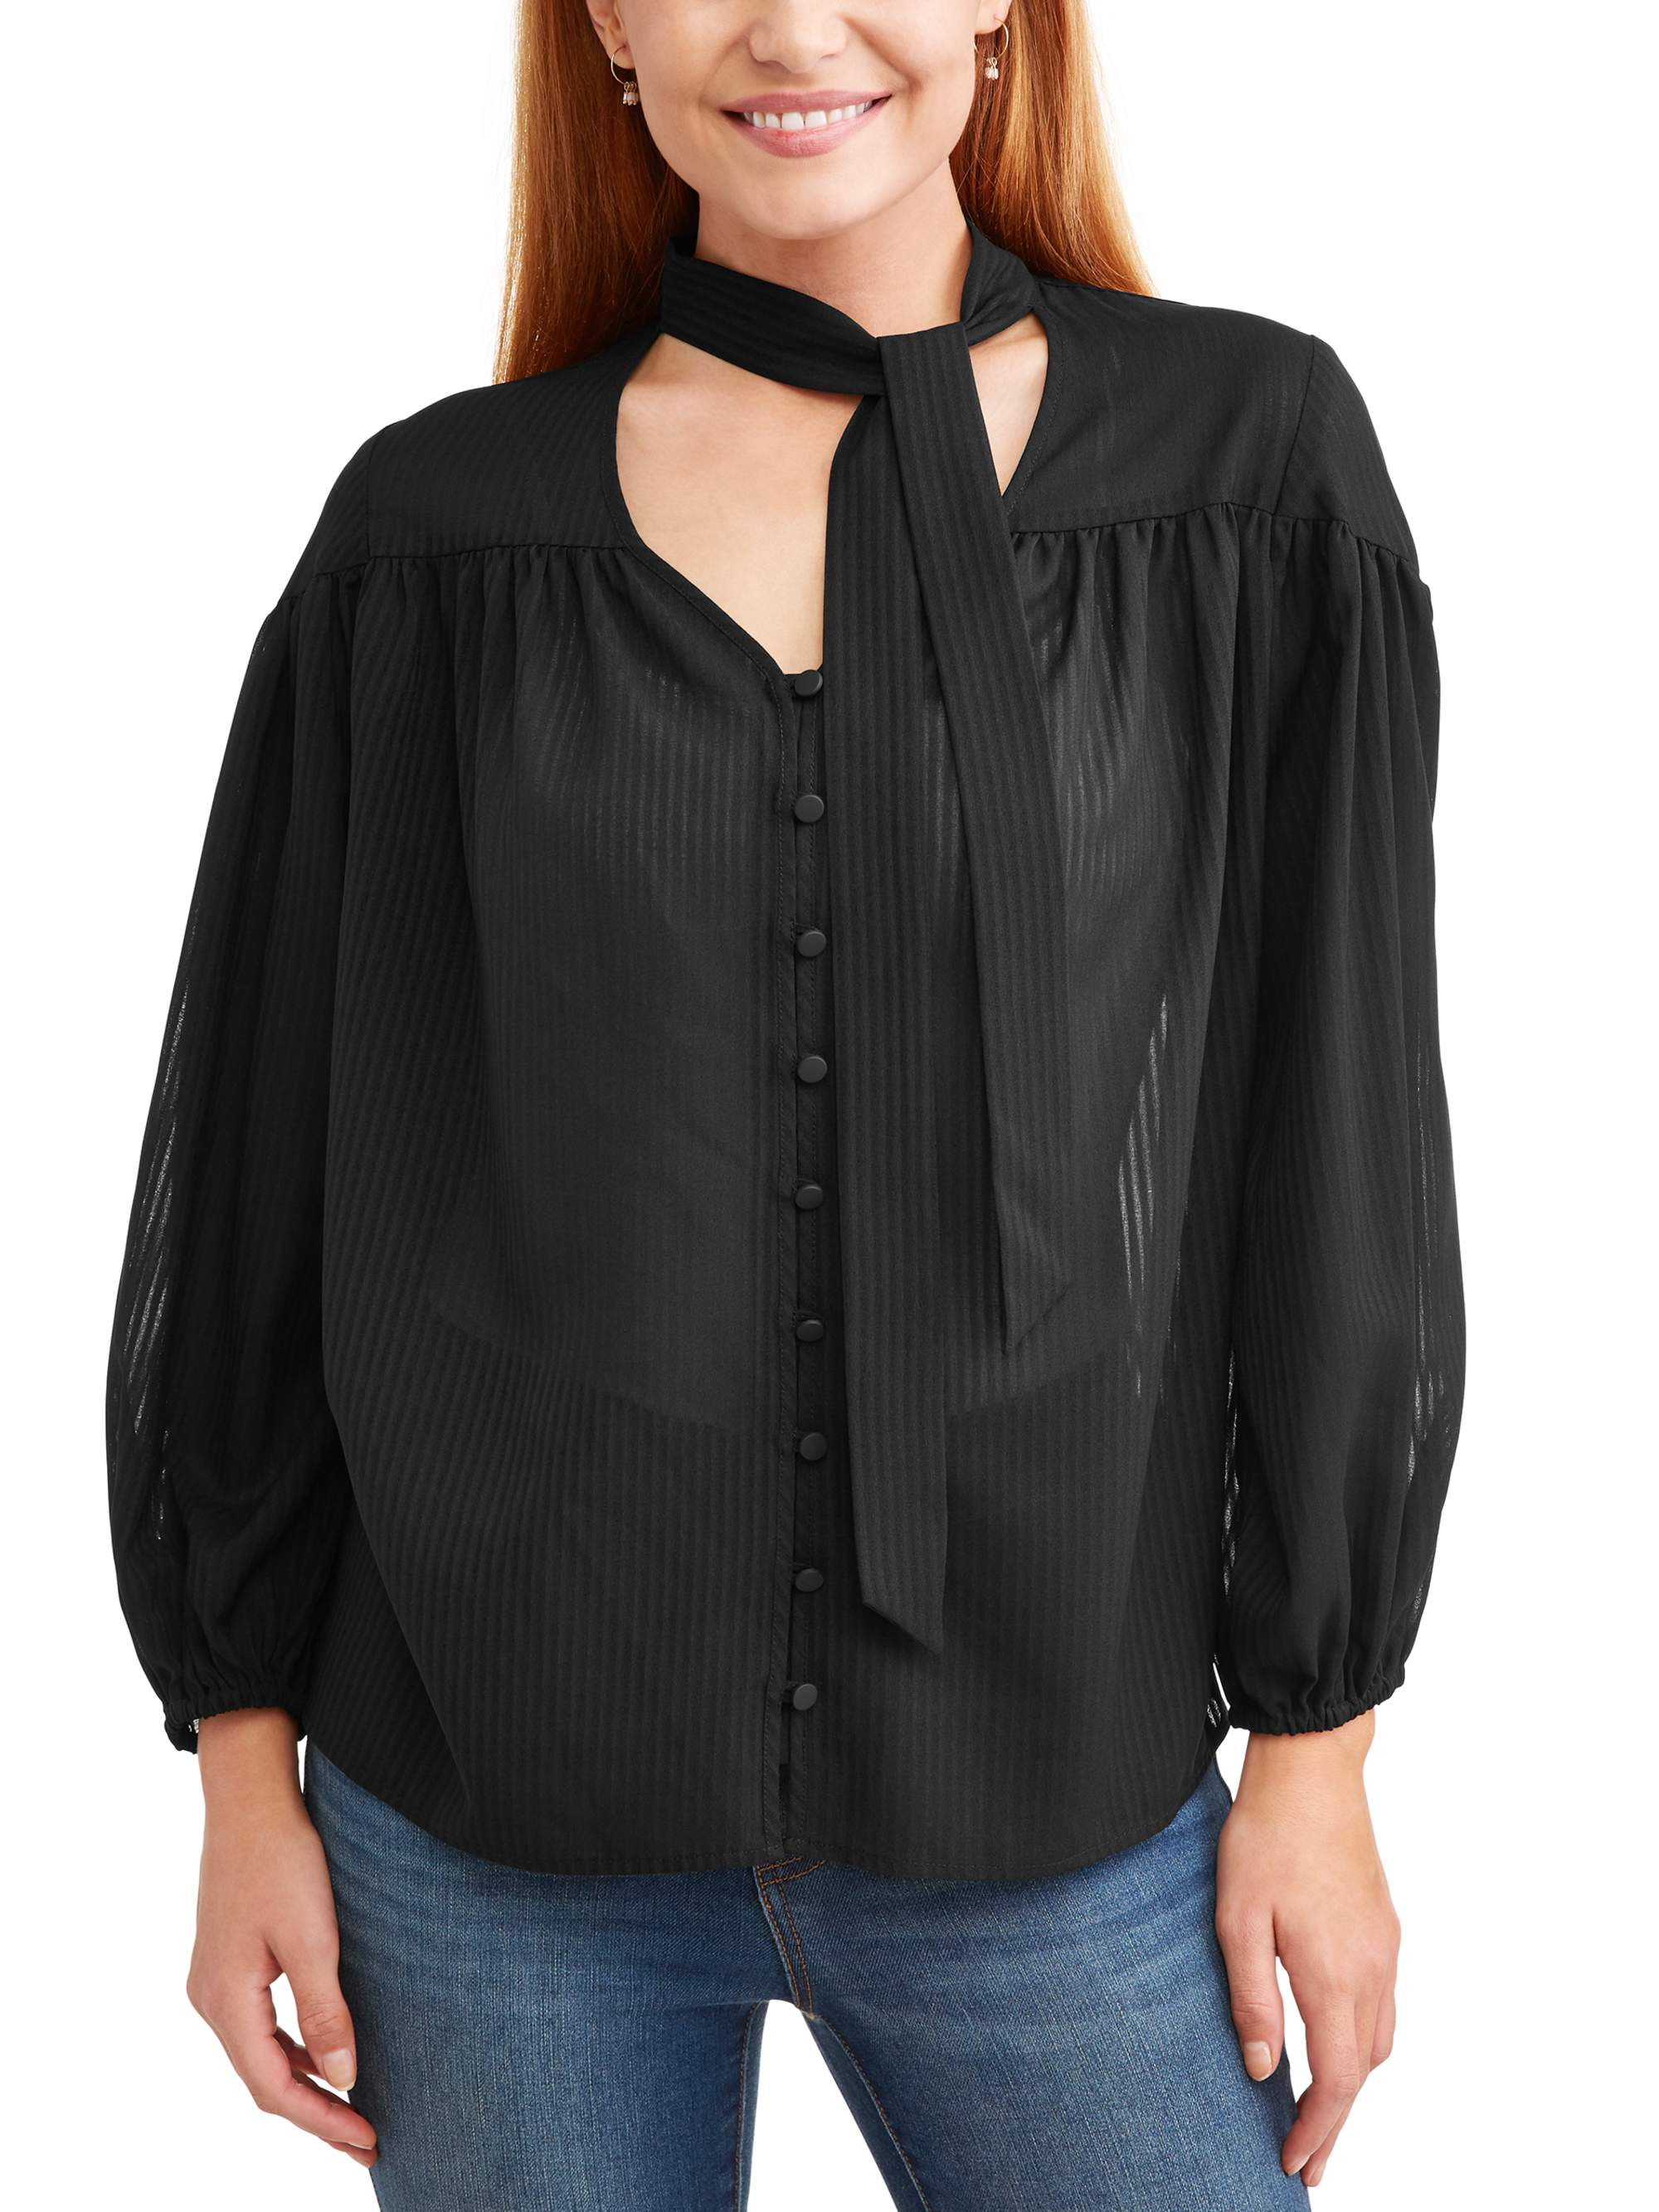 Women's Long Sleeve Tie Neck Top